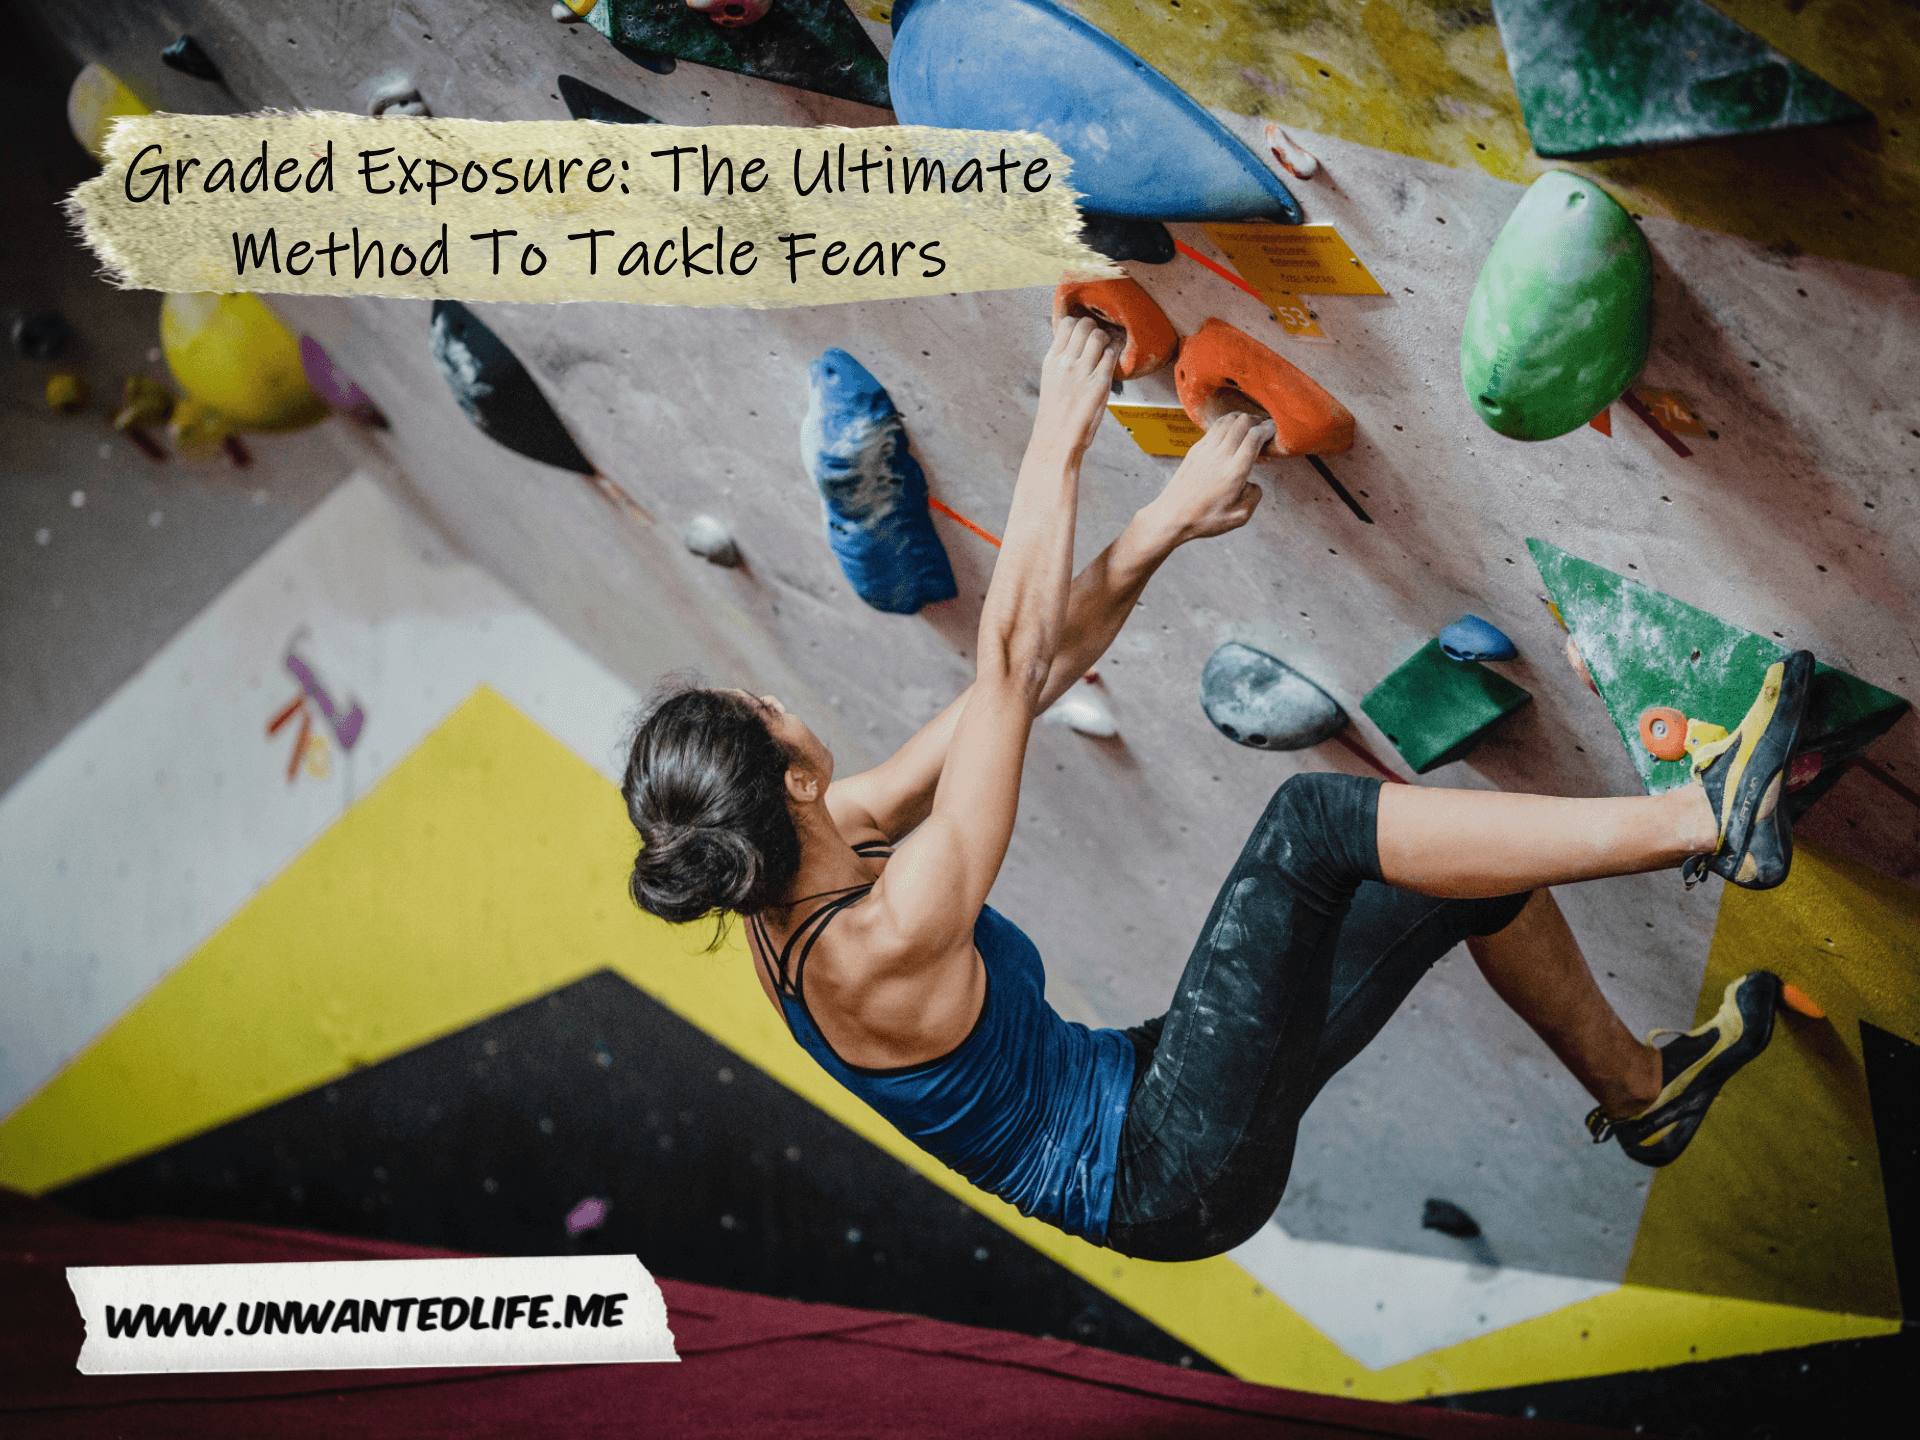 A photo of a white woman doing indoor rock-climbing to represent the topic of the article - Graded Exposure: The Ultimate Method To Tackle Fears